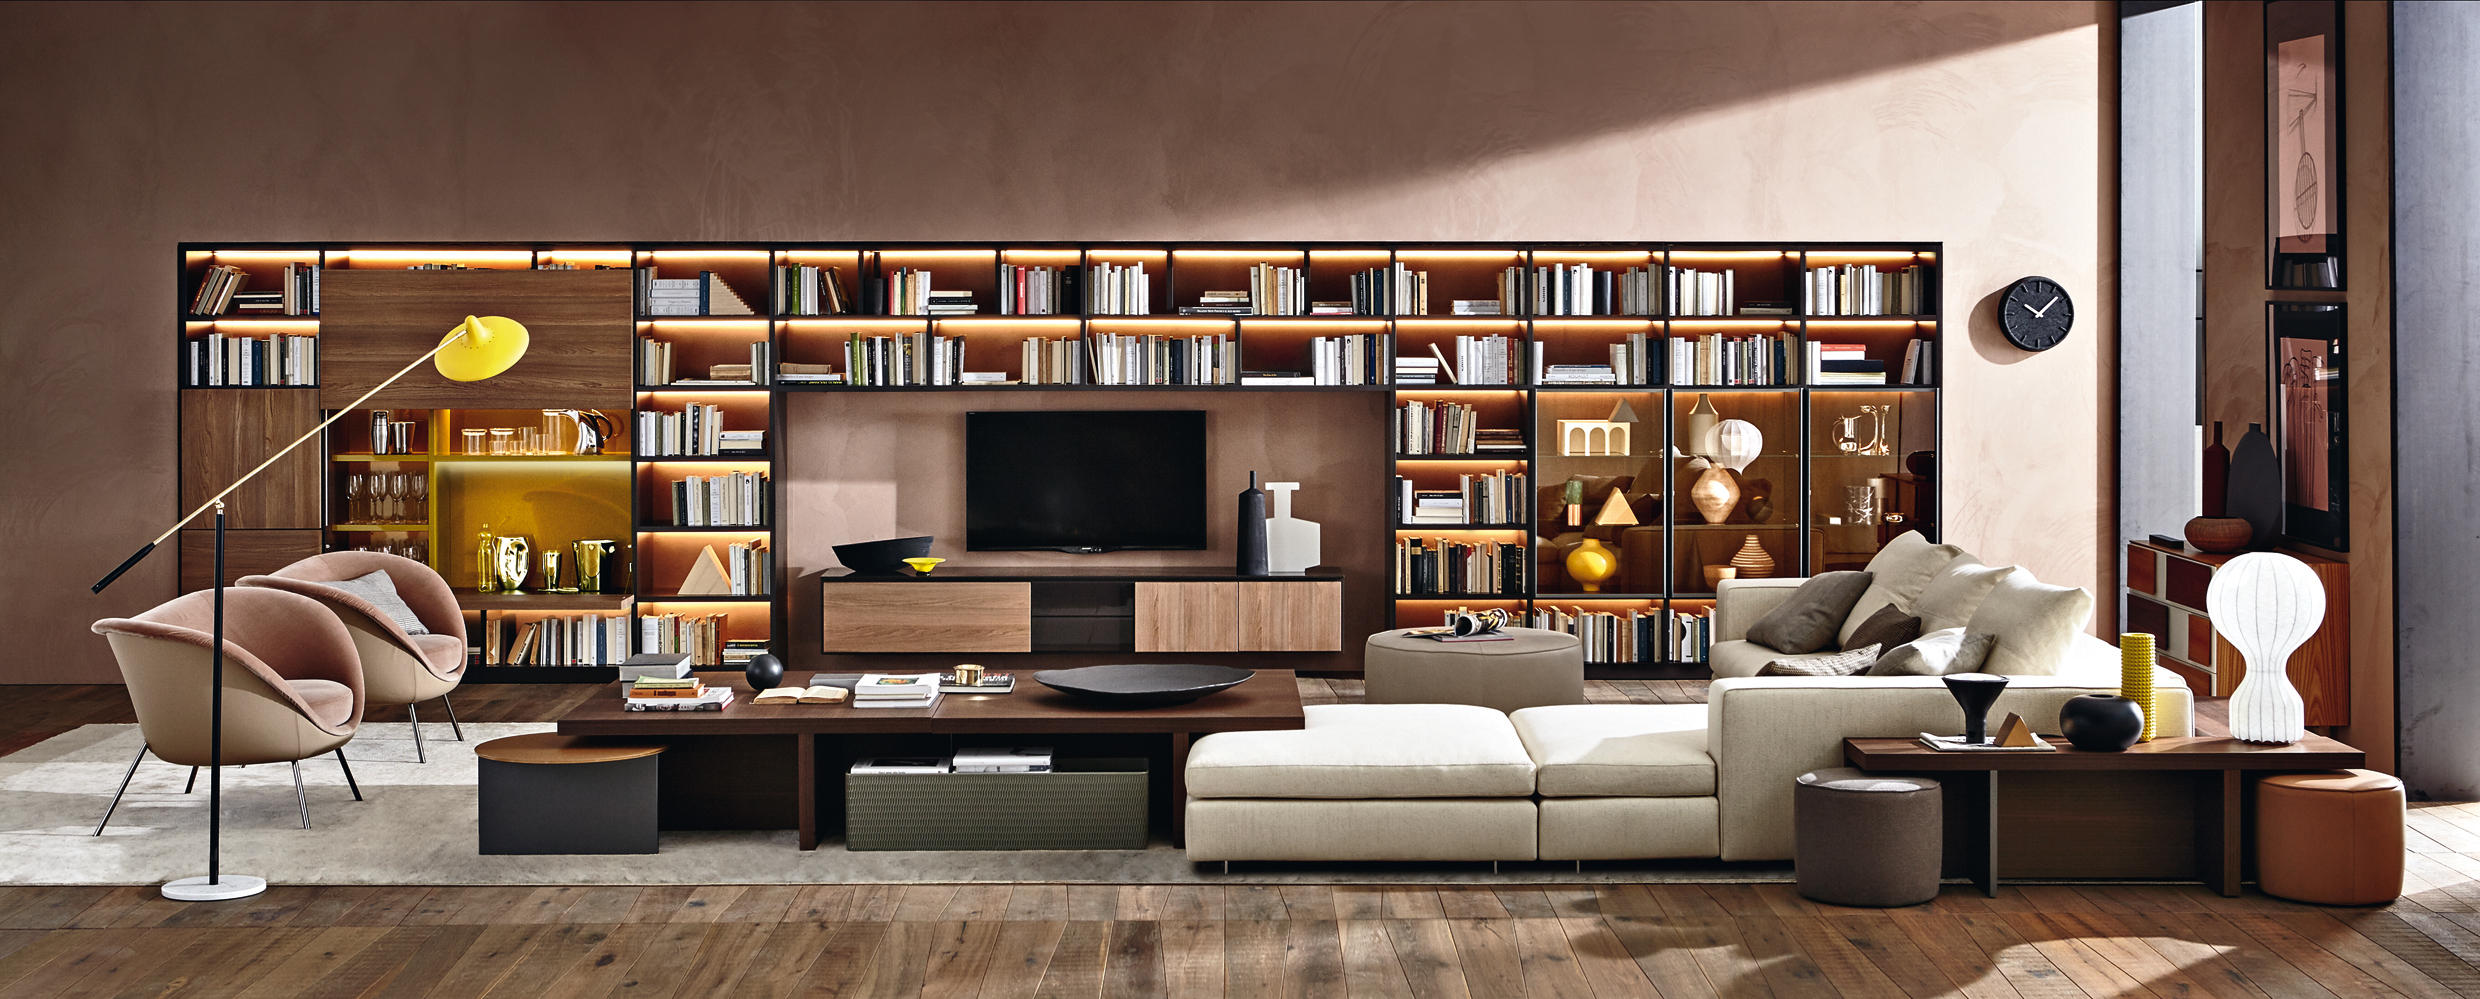 Image Result For Bookshelves With Tv